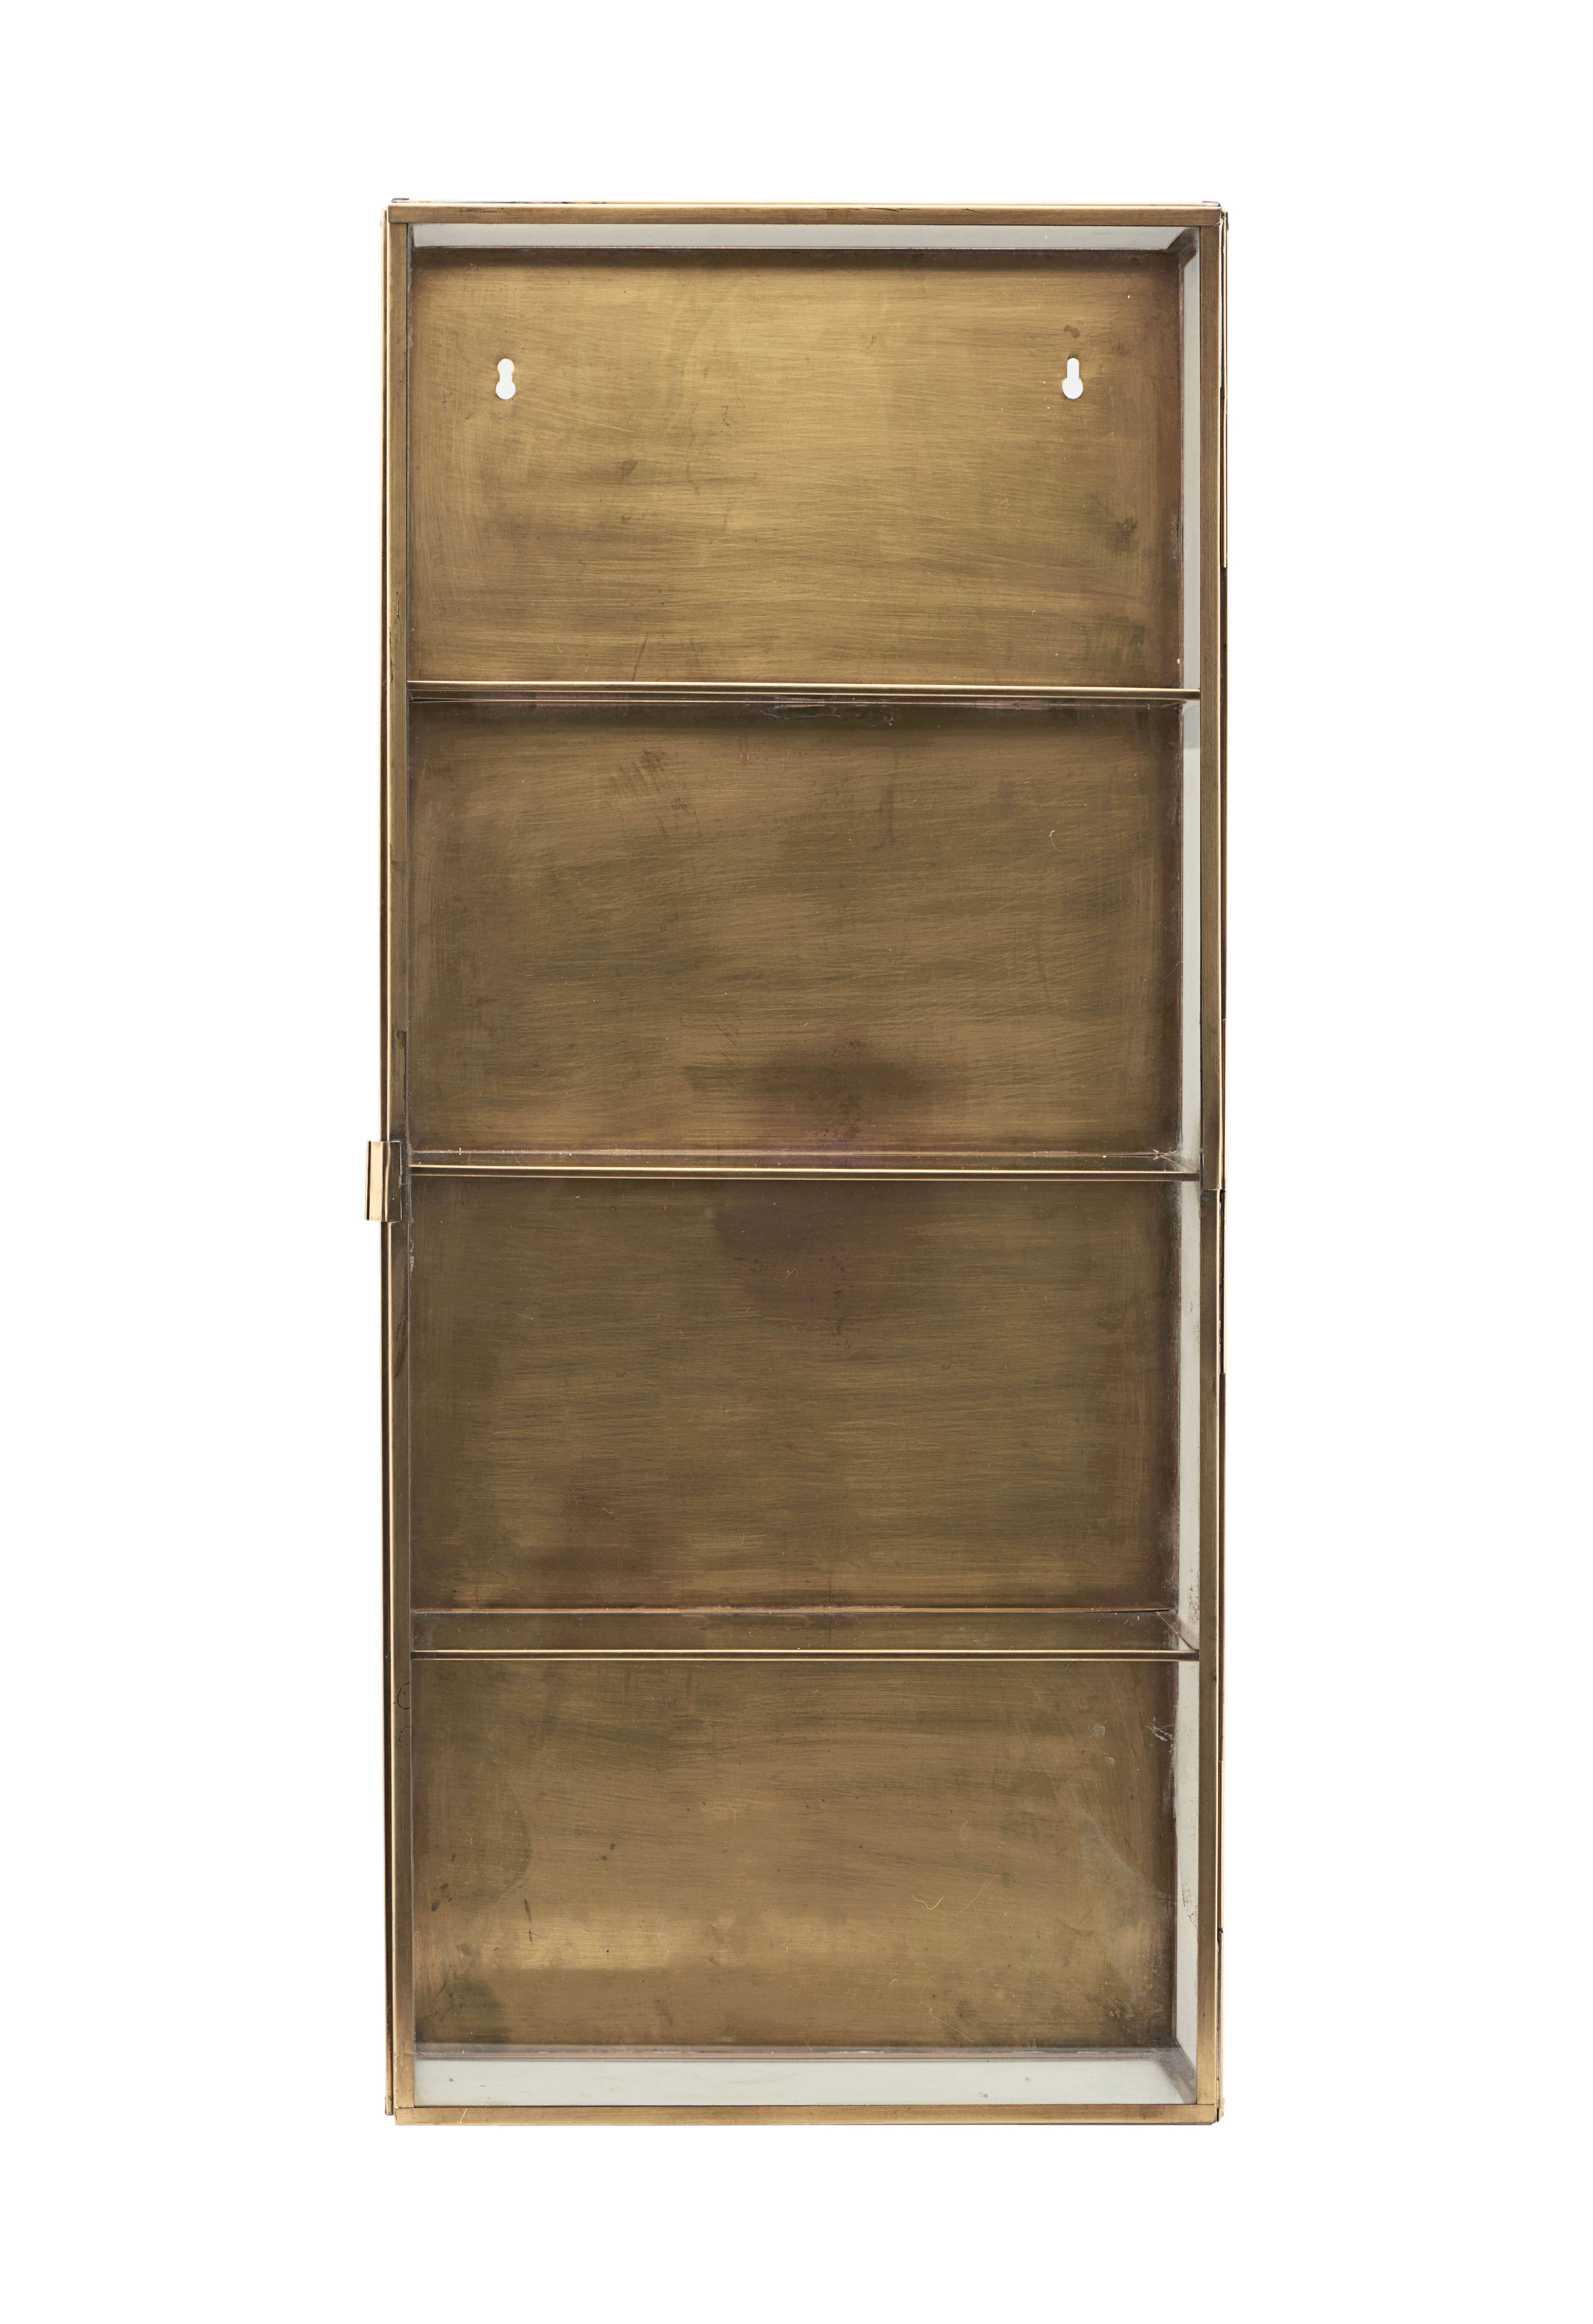 cabinet large wandablage vitrine l 35 cm x h 80 cm gro messing by house doctor made. Black Bedroom Furniture Sets. Home Design Ideas